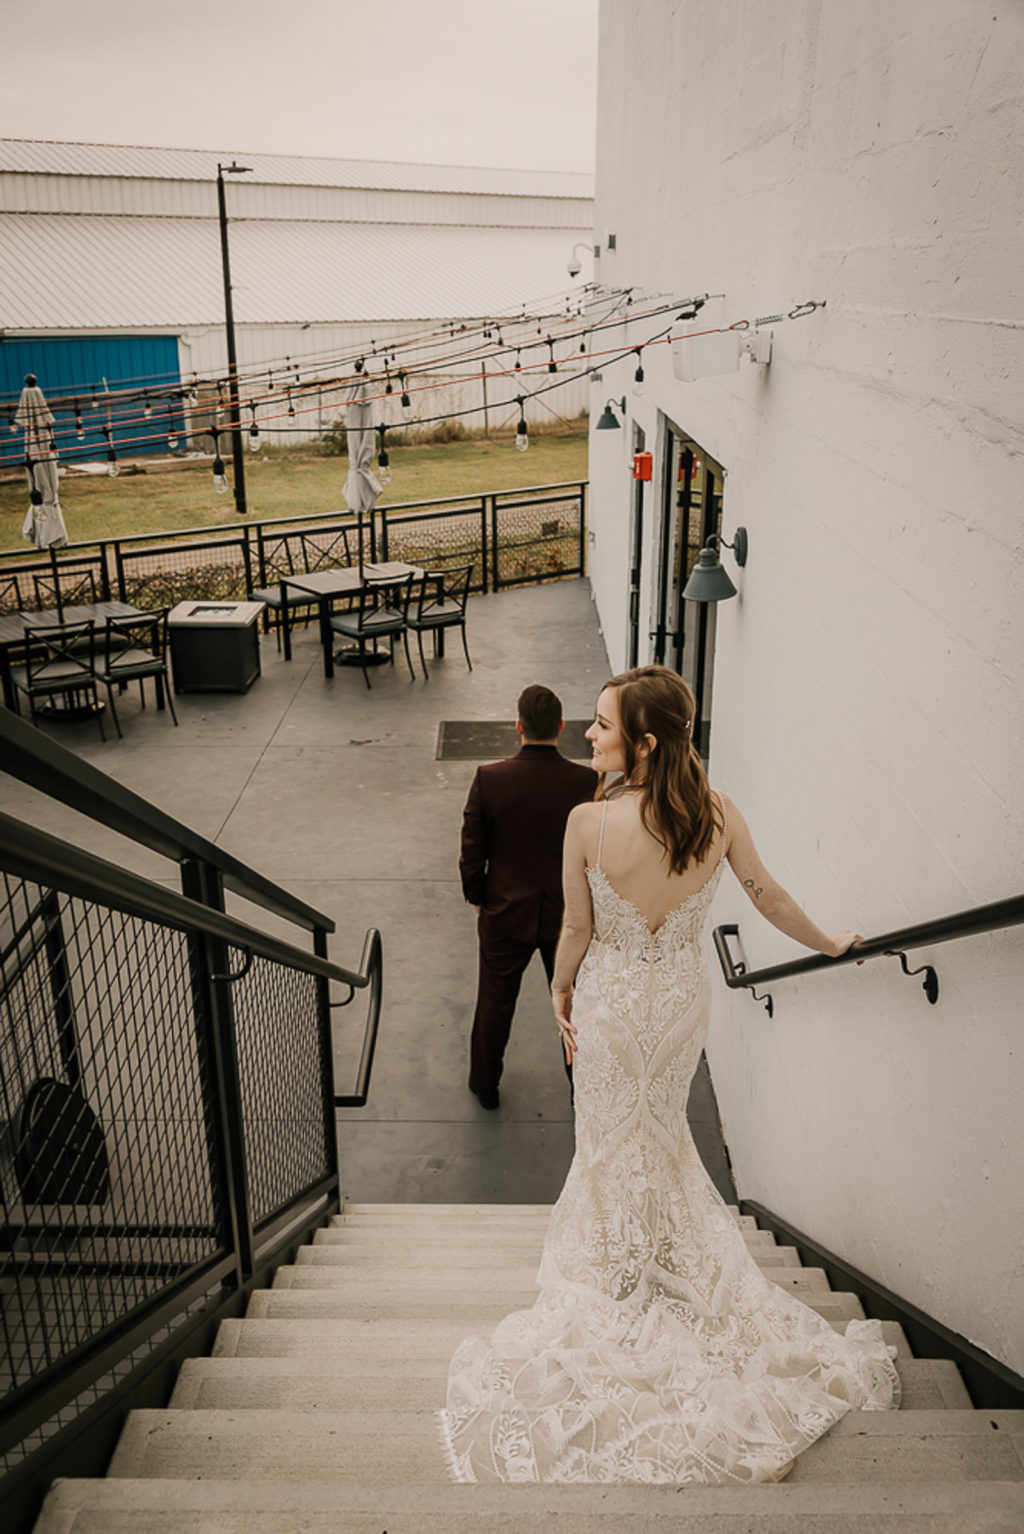 Bride and Groom First Look Photo | Lace and Embroidery Detailed Wedding Dress Fitted with Deep Cut Back | Chic Nostalgia